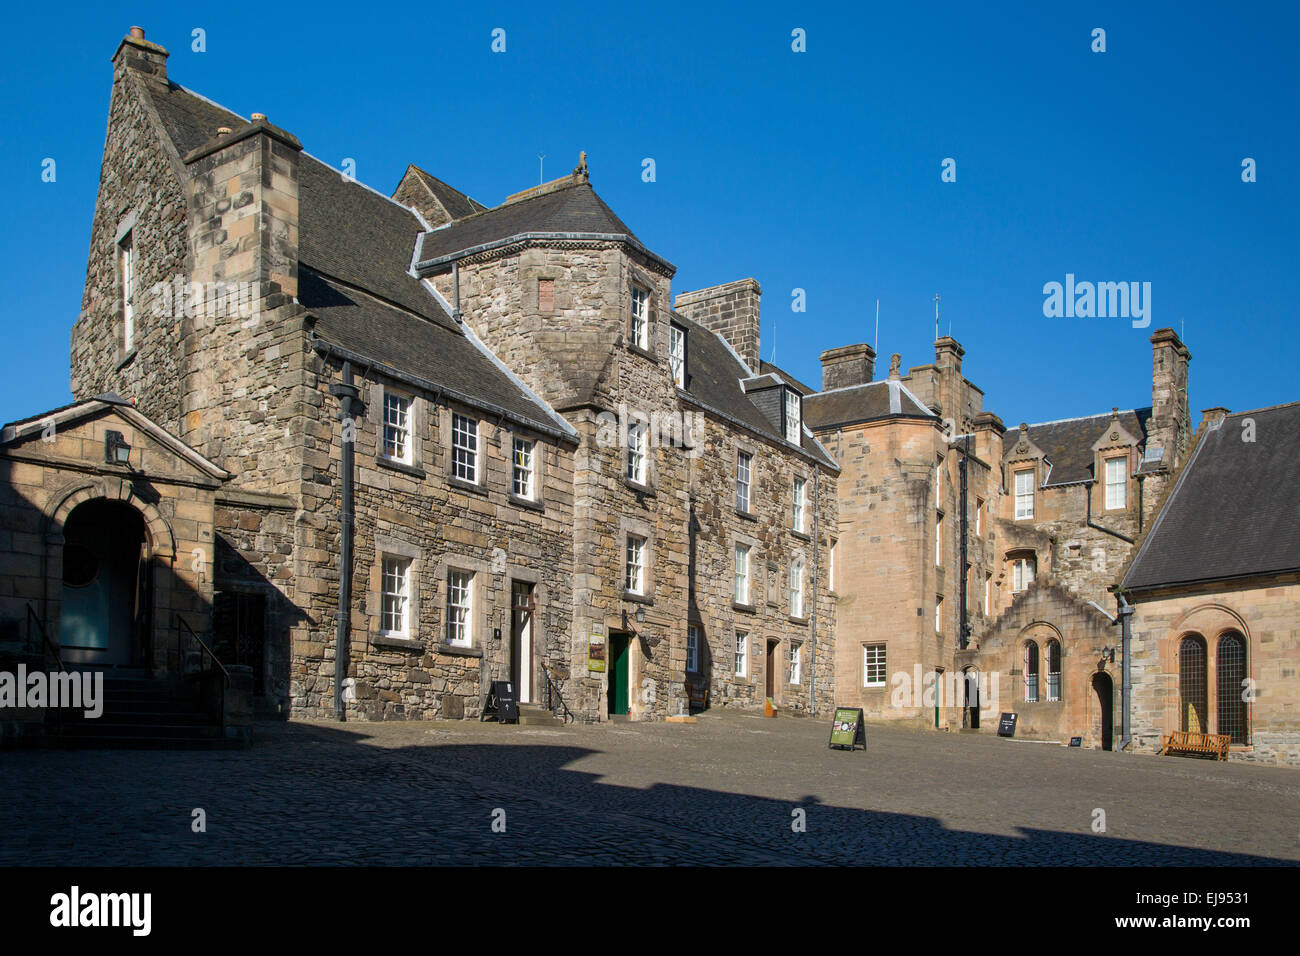 Inside the walls of Stirling Castle, the courtyard and royal residence, Stirling, Scotland, UK - Stock Image